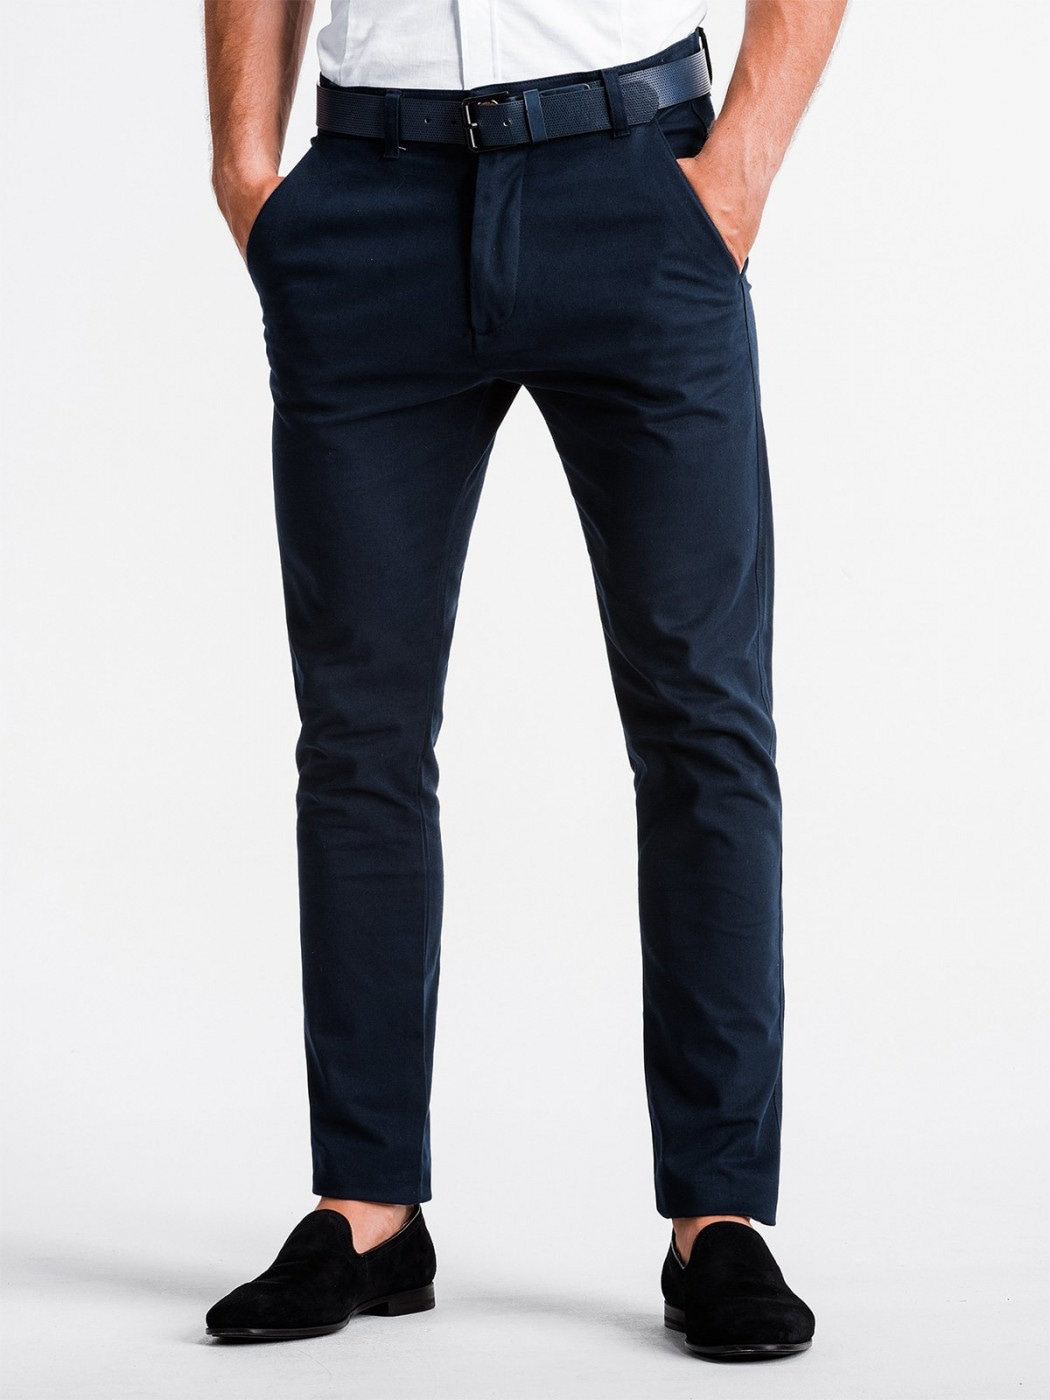 Ombre Clothing Men's pants chinos P830